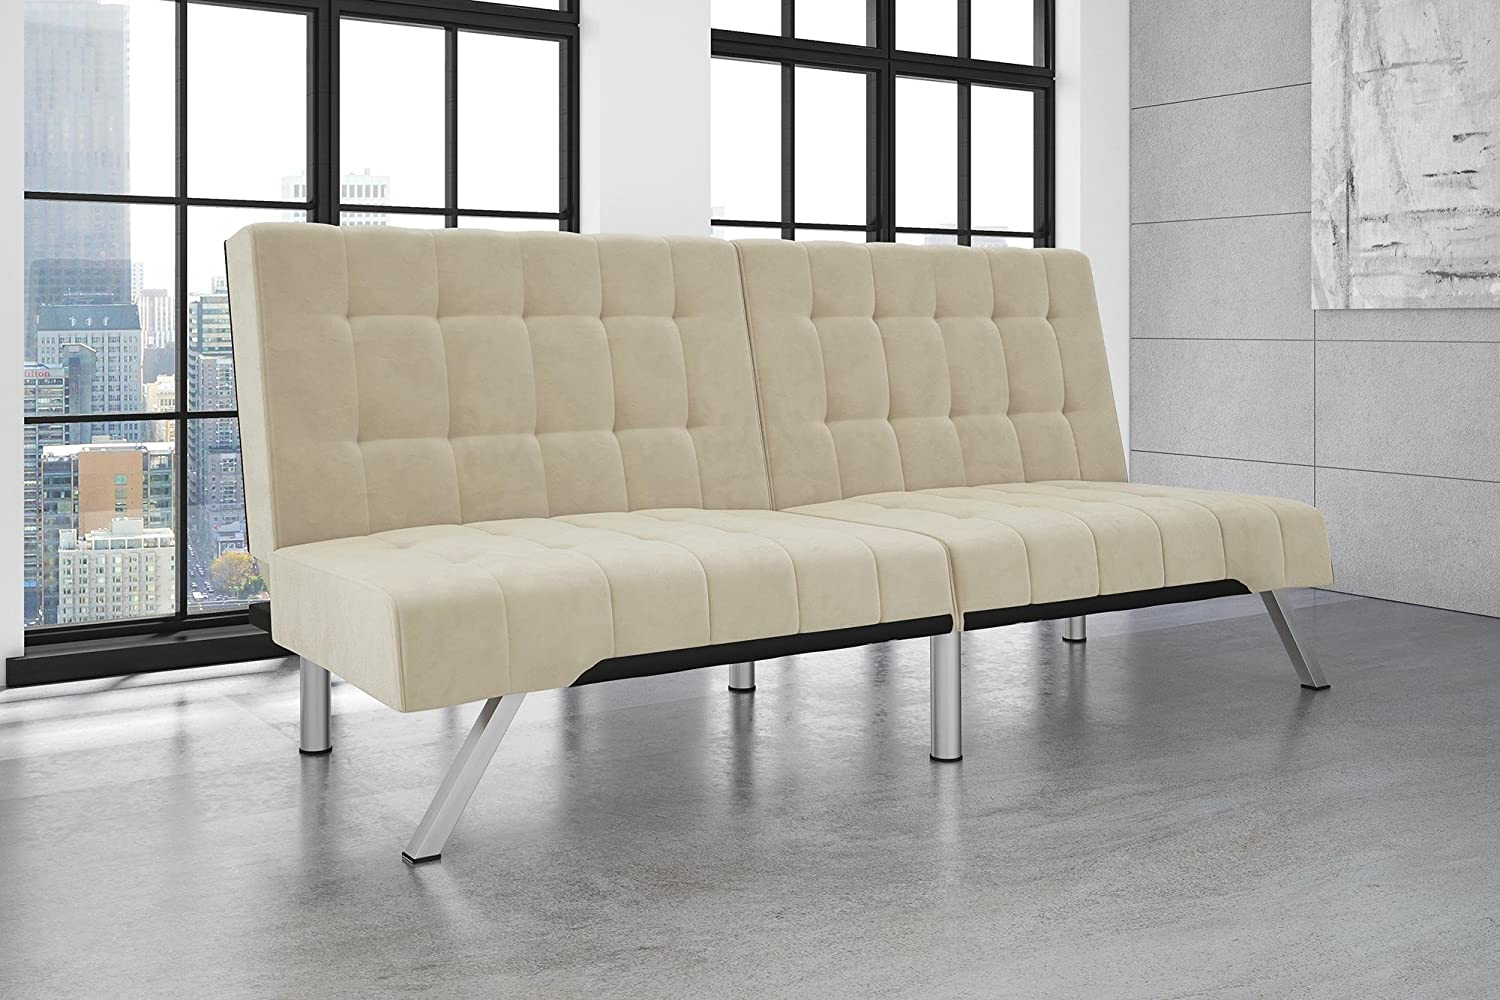 100 couch bed kebo futon sofa bed multiple colors walmart c